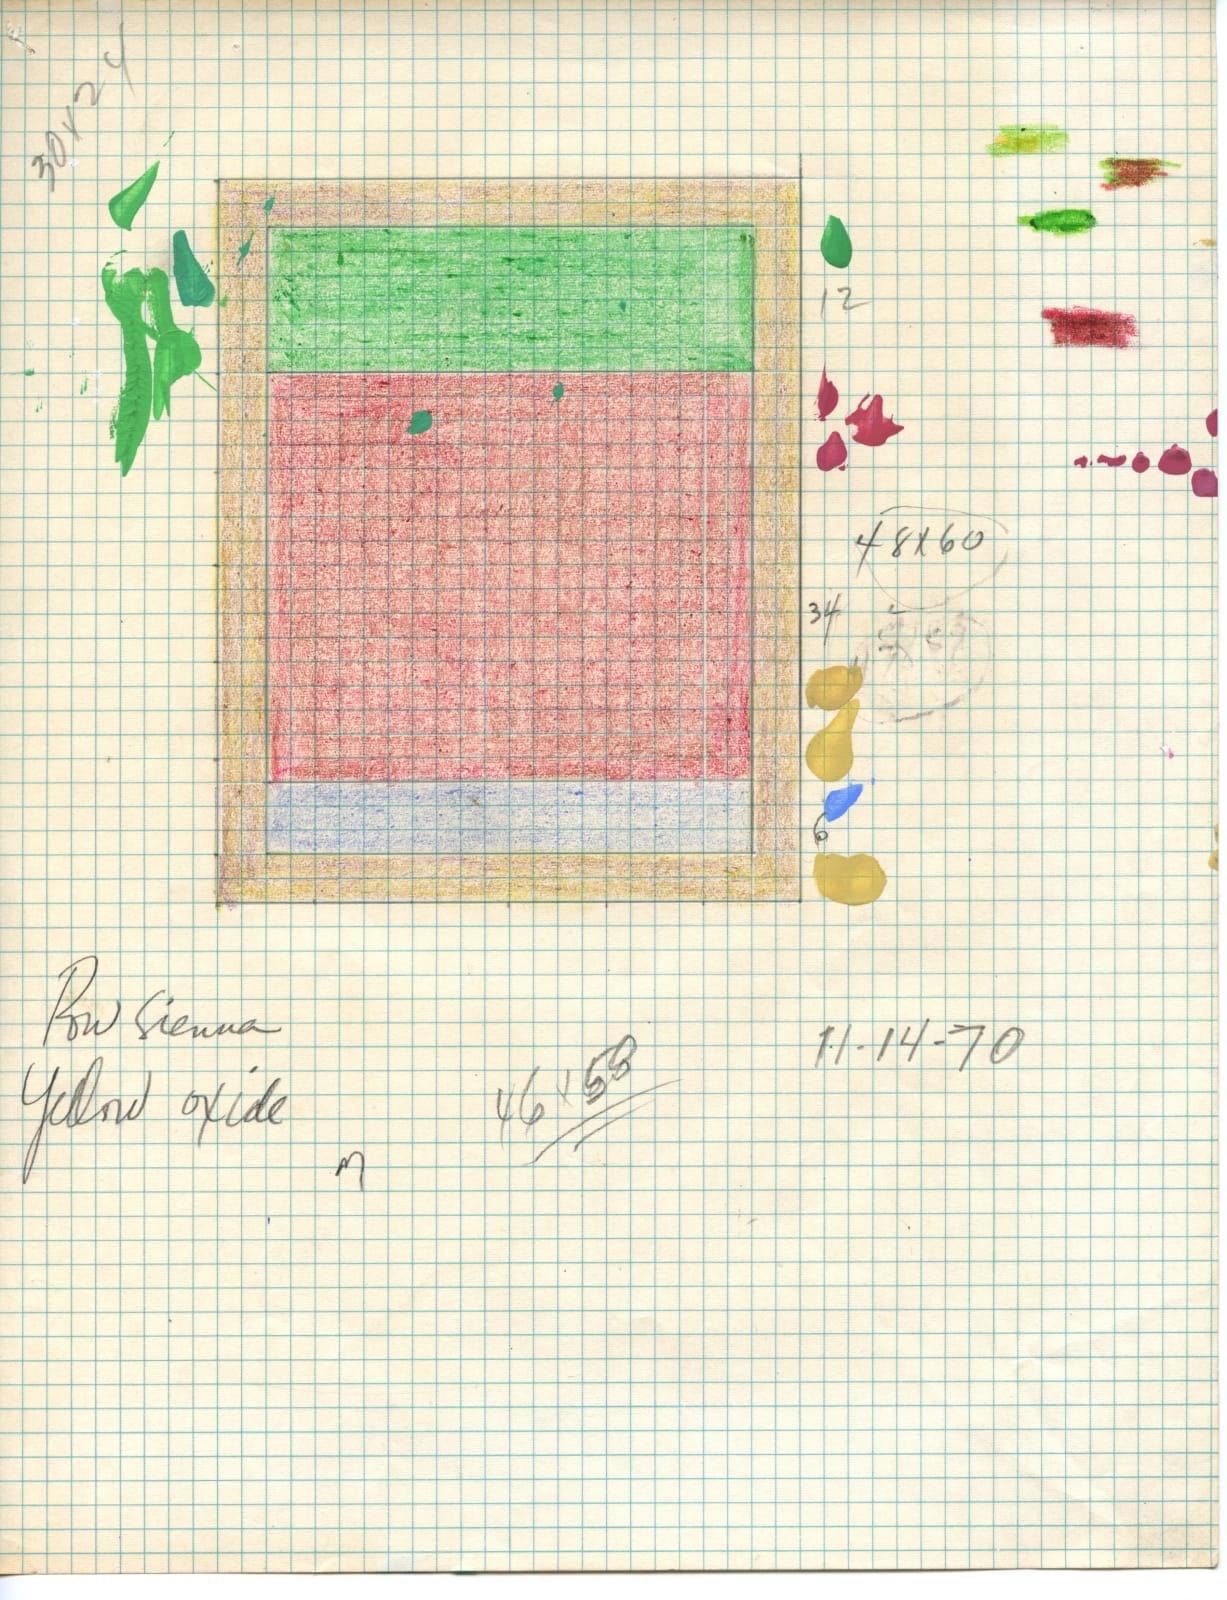 Freddy Rodríguez, Untitled (Preparatory Sketch), 1970